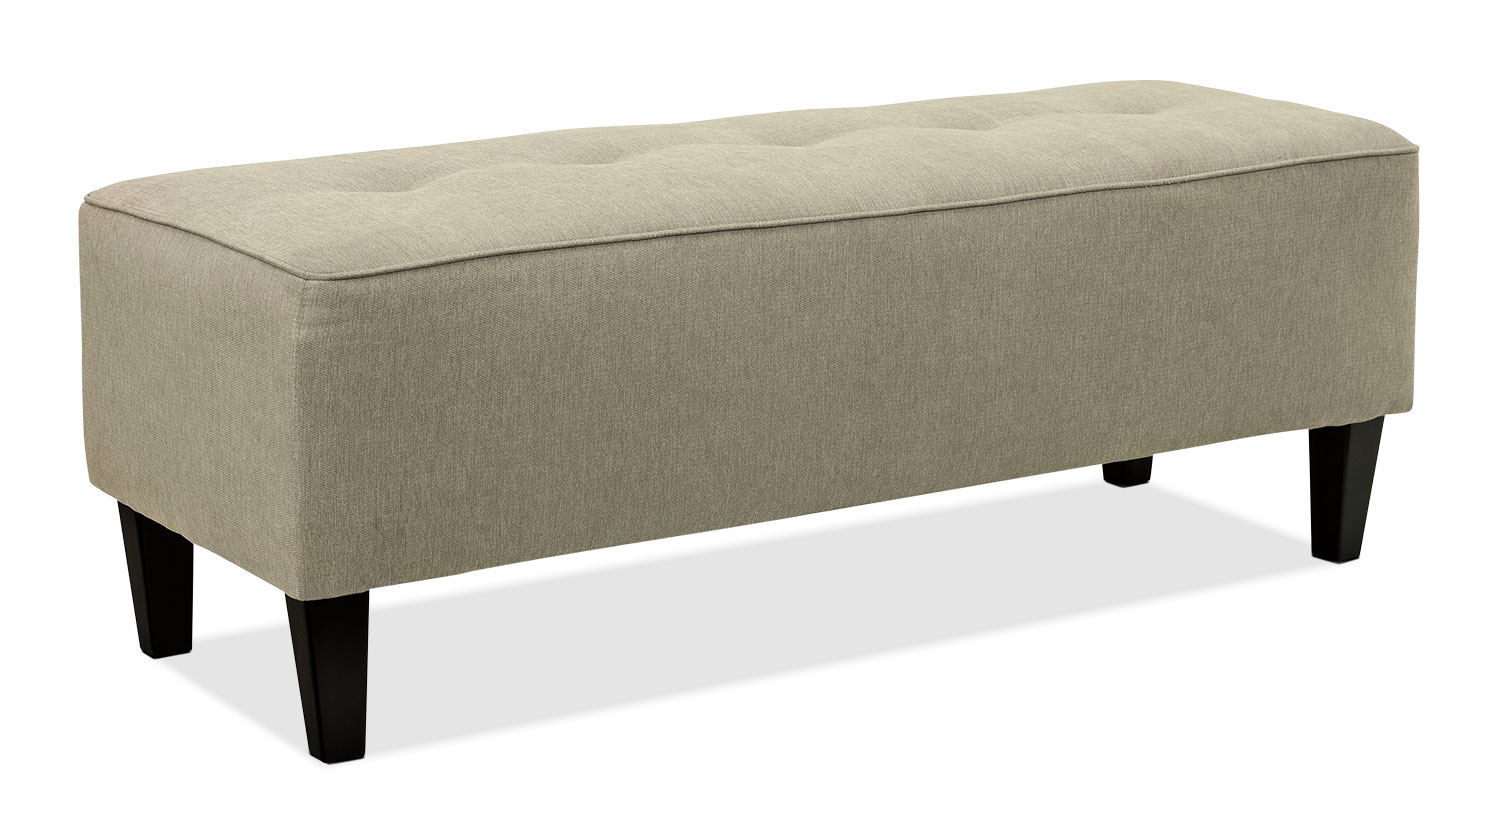 Accent and Occasional Furniture - Ocilla Ottoman – Quartz